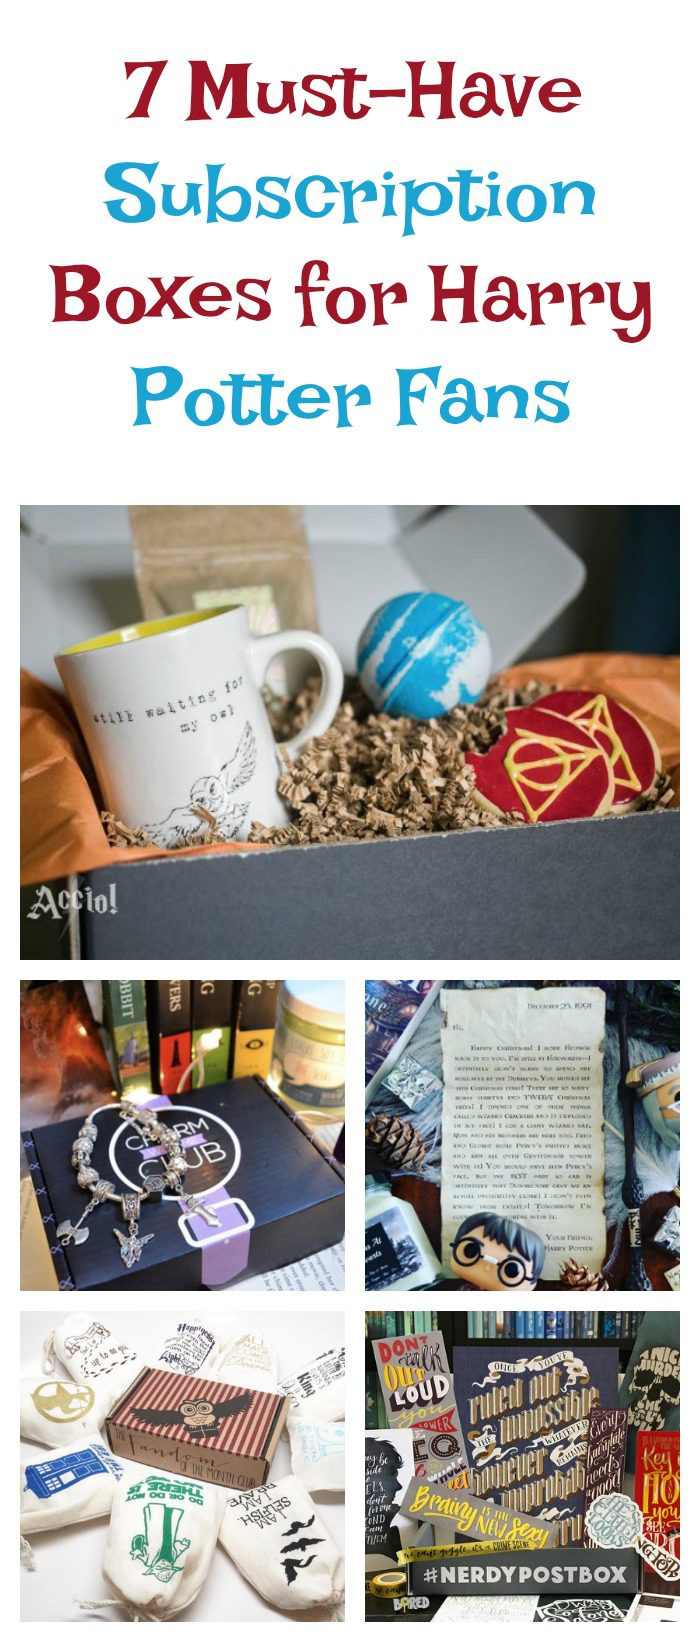 Must-Have Subscription Boxes for Harry Potter Fans